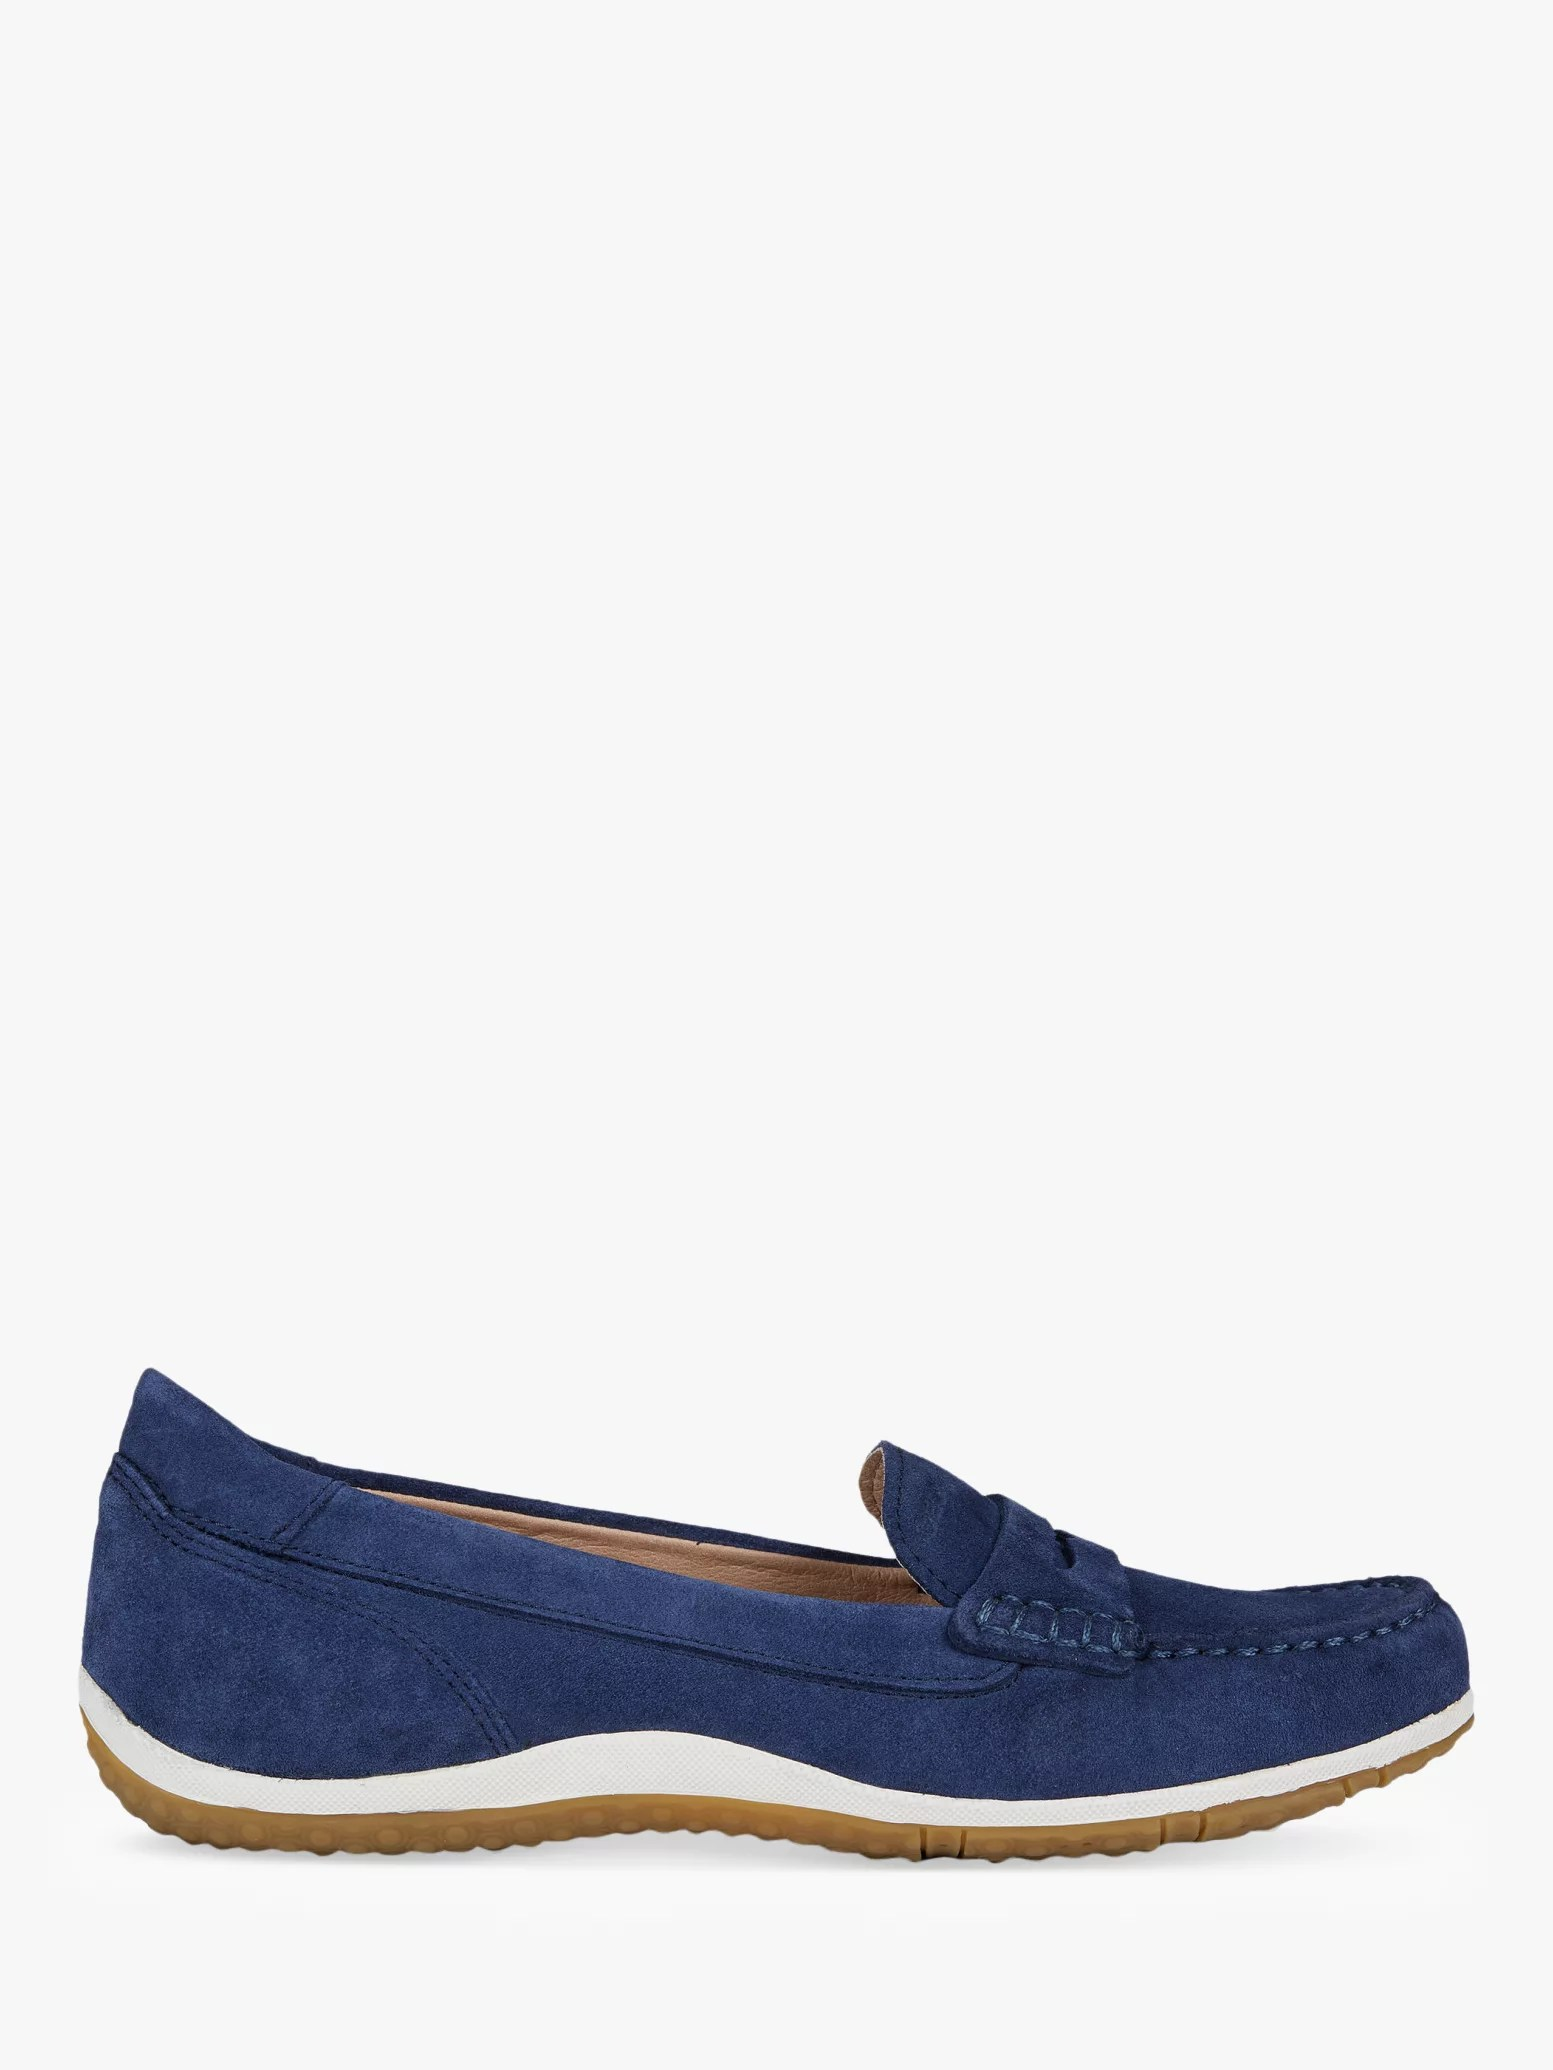 Womens Blue Slip On Shoes